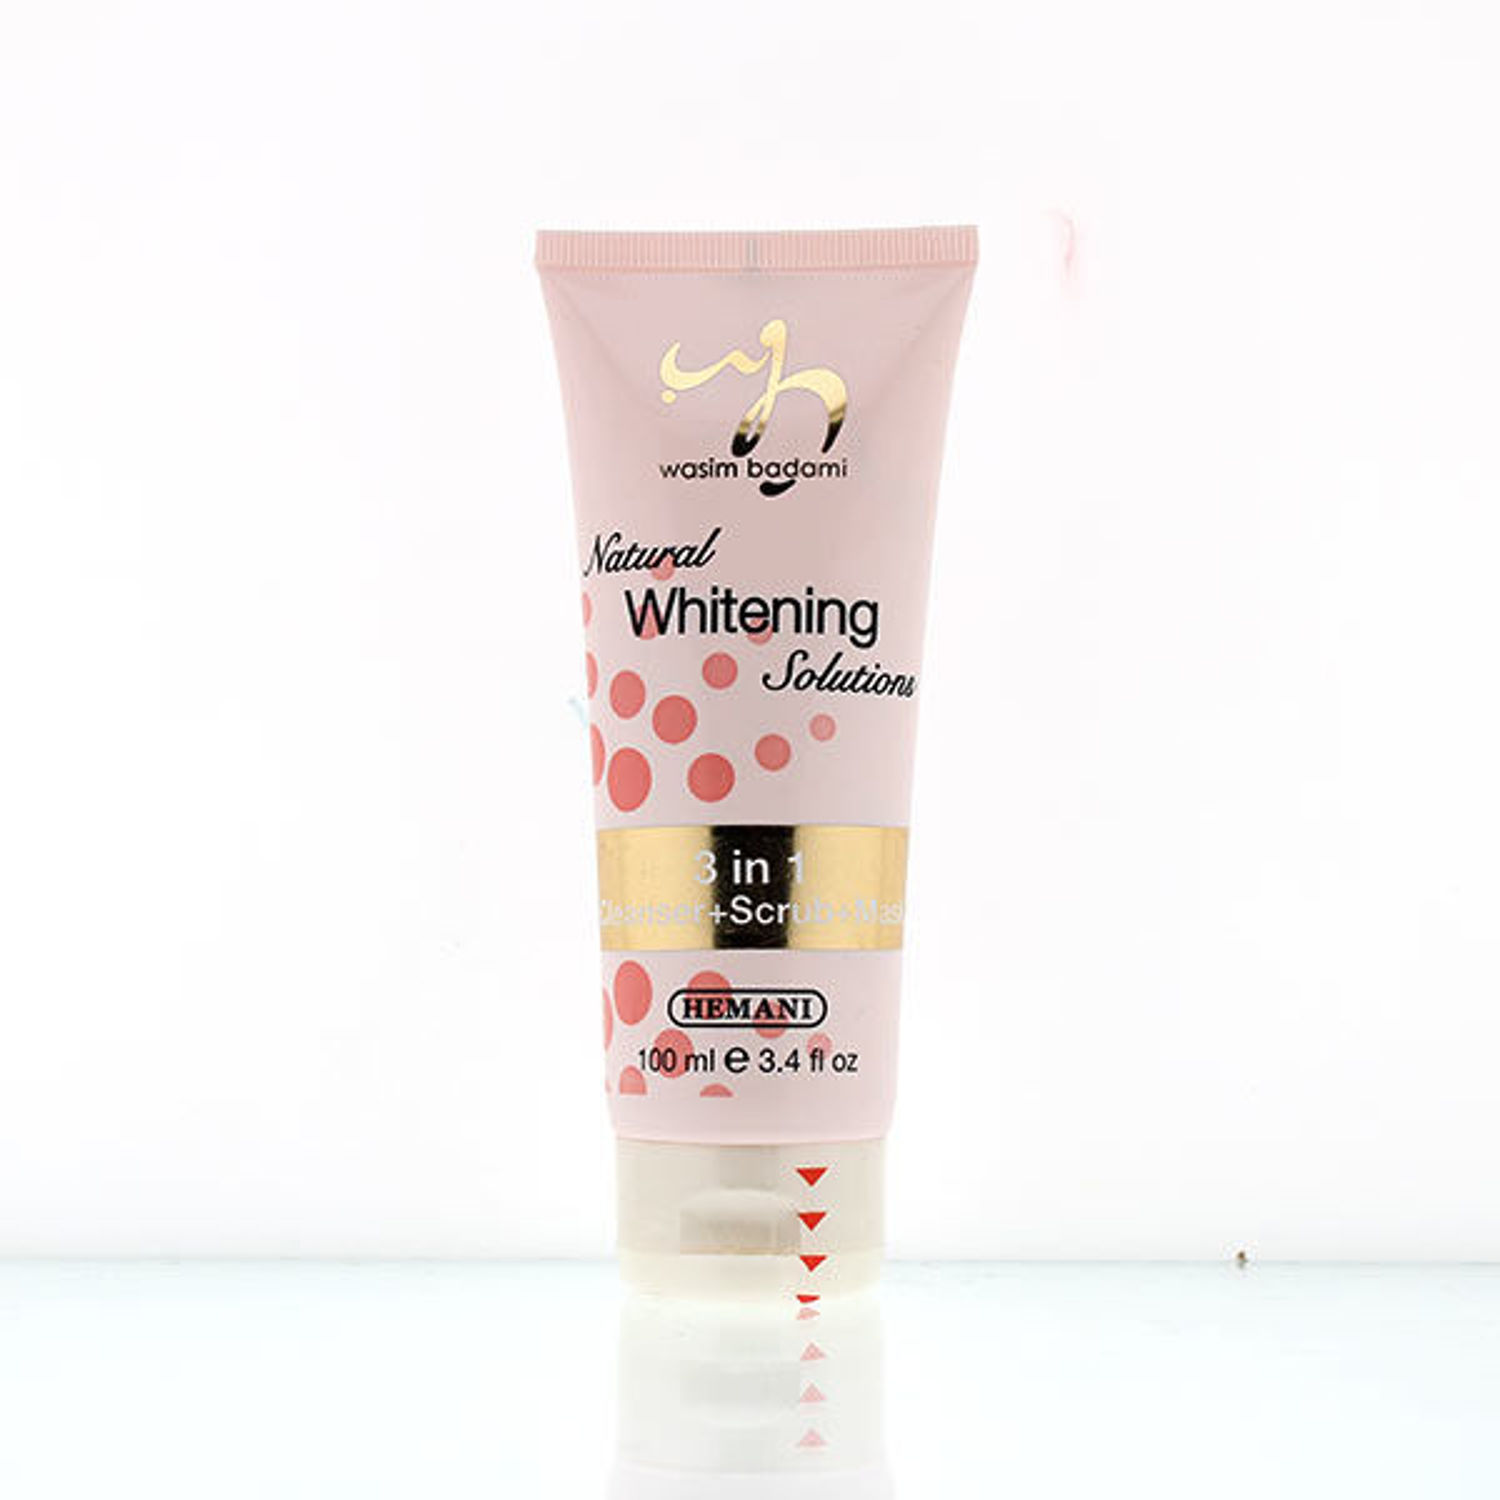 WB by Hemani Natural Whitening Solutions Scrub Mud Mask